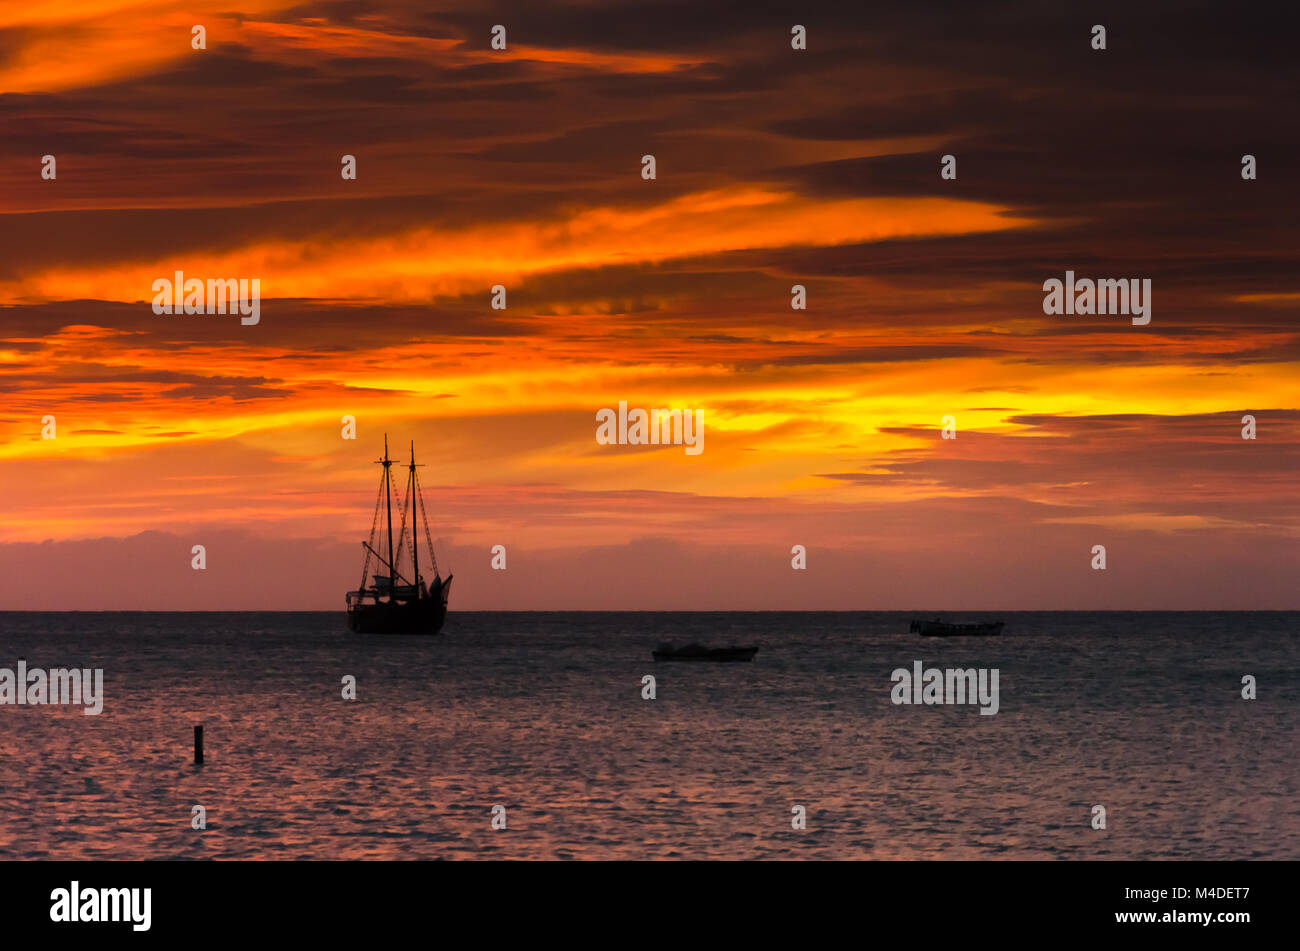 the Golden hour with  sail boats on sea anchored - Stock Image